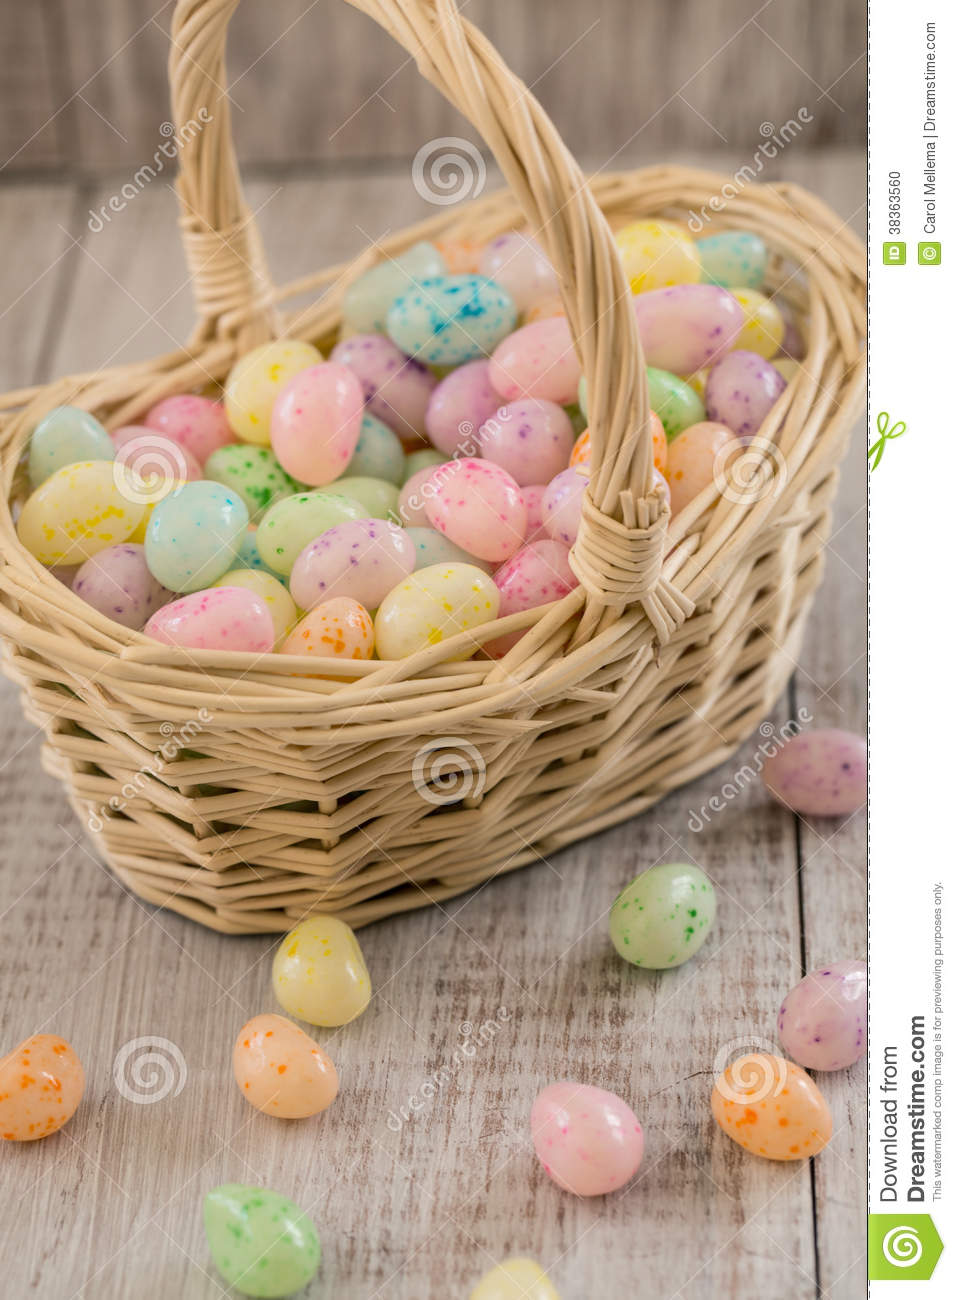 pastel eggs easter sweet - photo #24